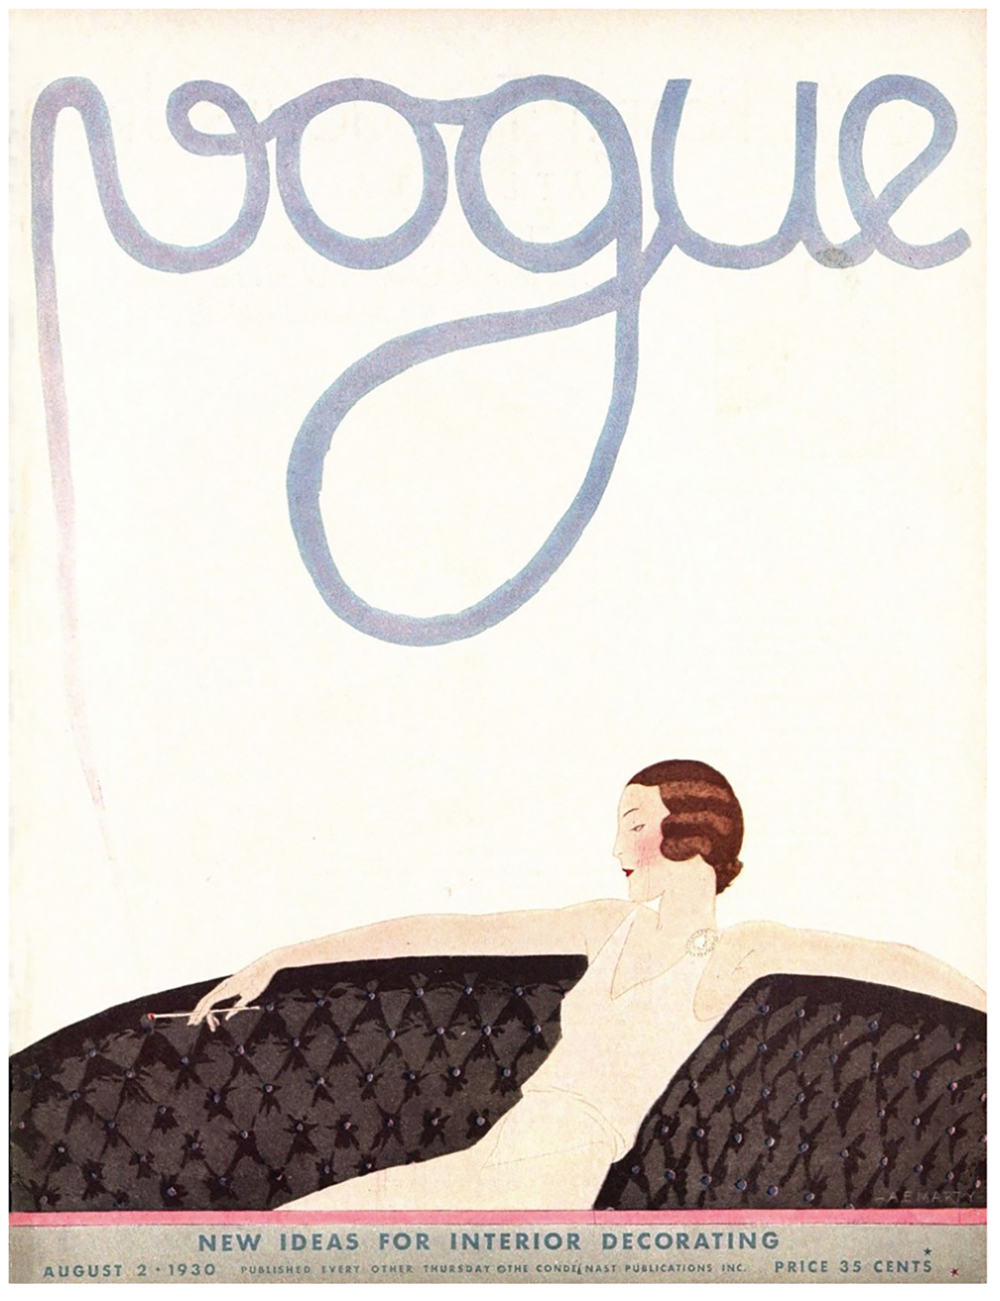 VOGUE-Moshik-1930.png